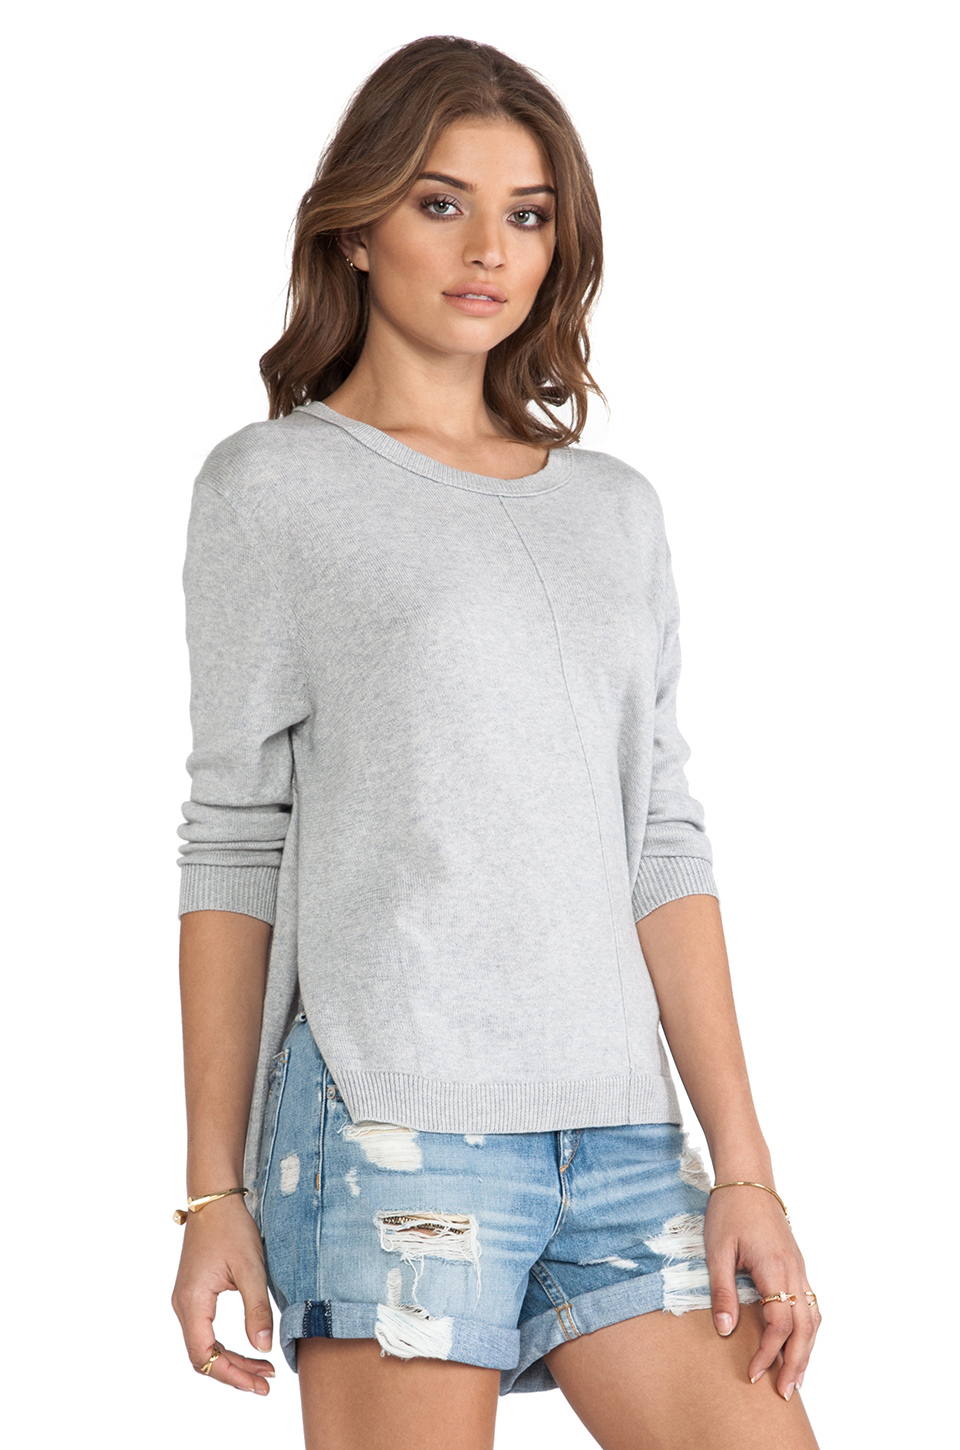 360 Sweater Celeste Star Cashmere Sweater in Heather Grey & Ivory Star | REVOLVE